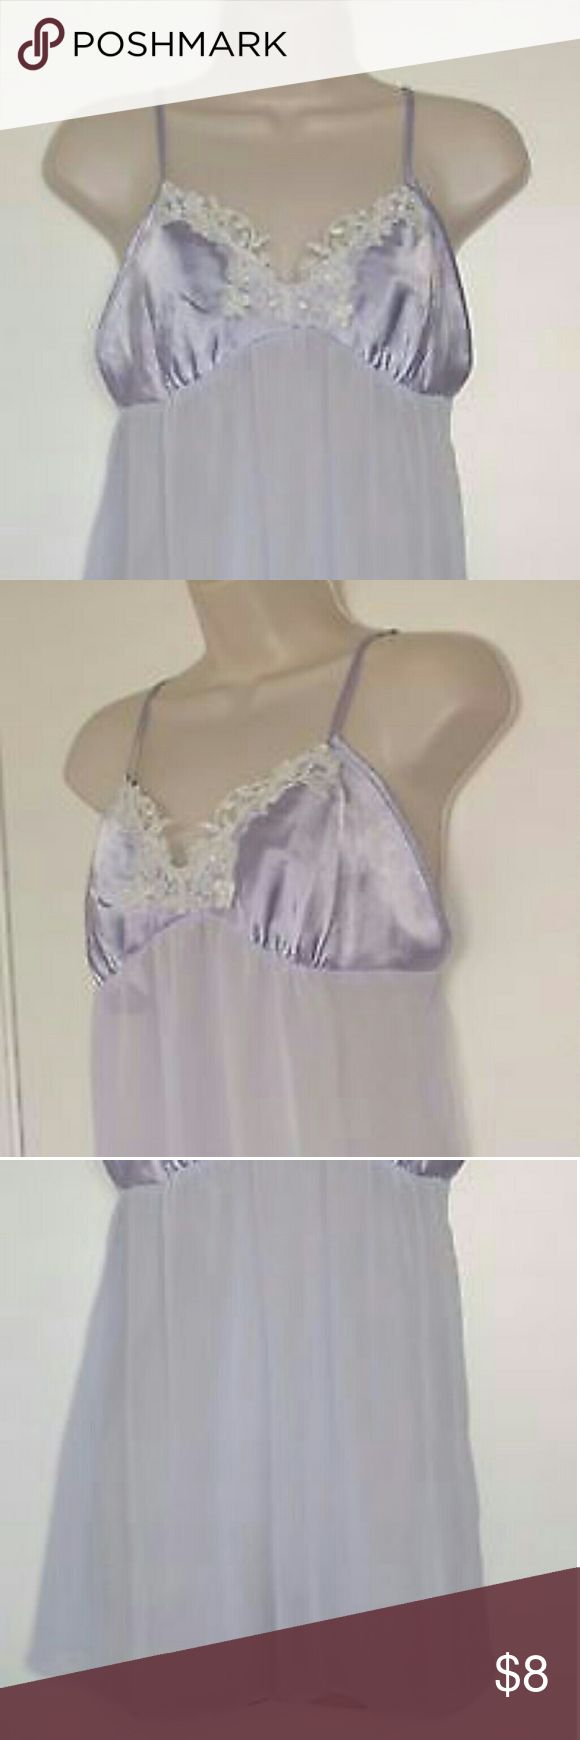 "Women Chemise Babydoll Sleepwear nightgown Bridal IN EXCELLENT USED CONDITION  Approximate Measurements: Taken Lying in a Flat surface unstretched  18"" Armpit to Armpit,   29"" Length from Top of  Back to Hem  Please inspect photos for details and to judge quality.  From a Smoke and Pet Free Home Apt. 9 Intimates & Sleepwear Chemises & Slips"